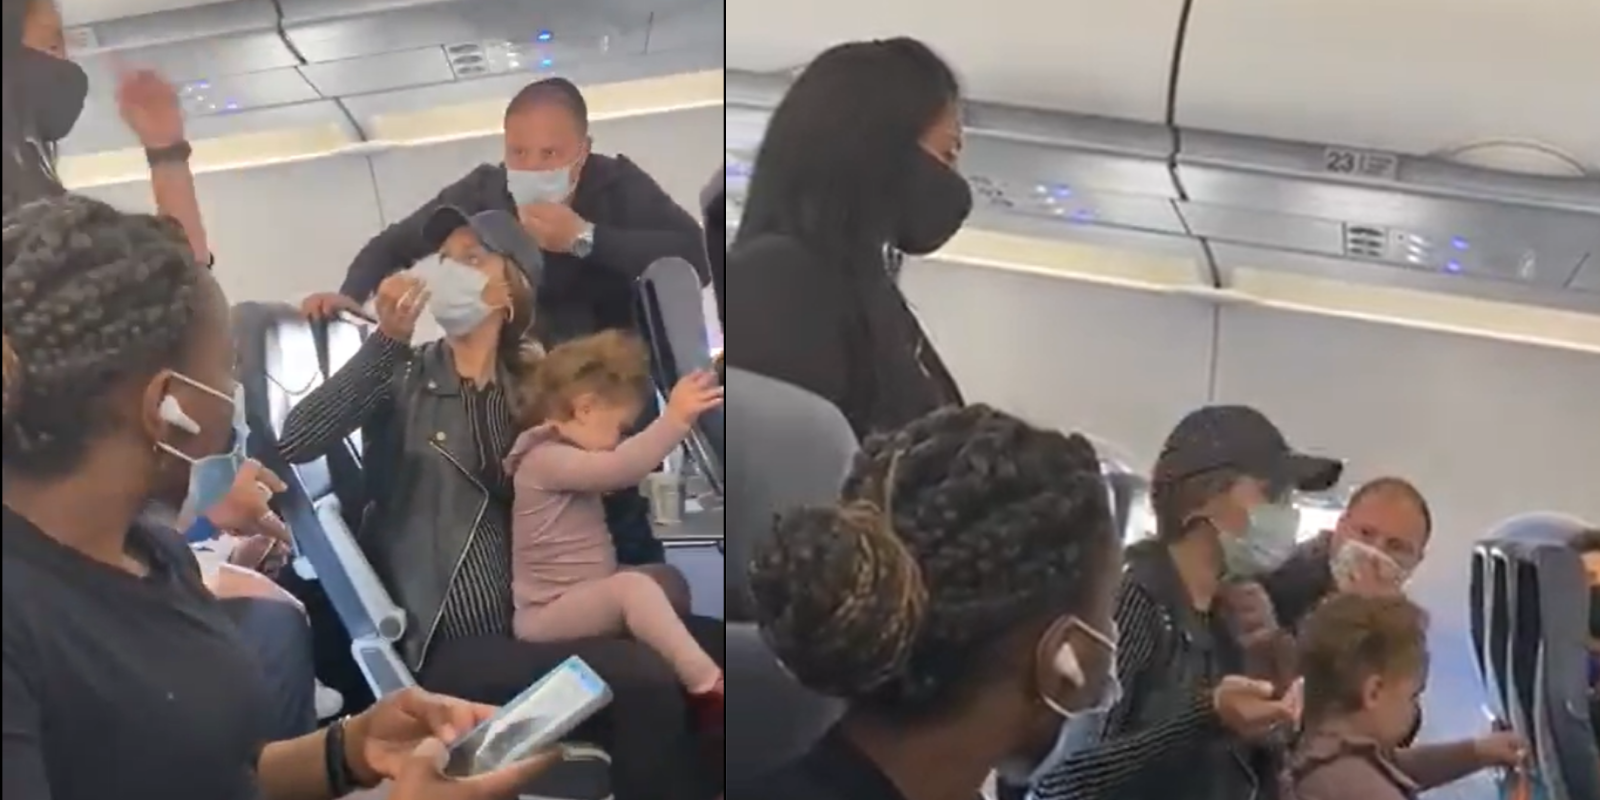 Couple who were being forced to leave the Spirit Airlines flight